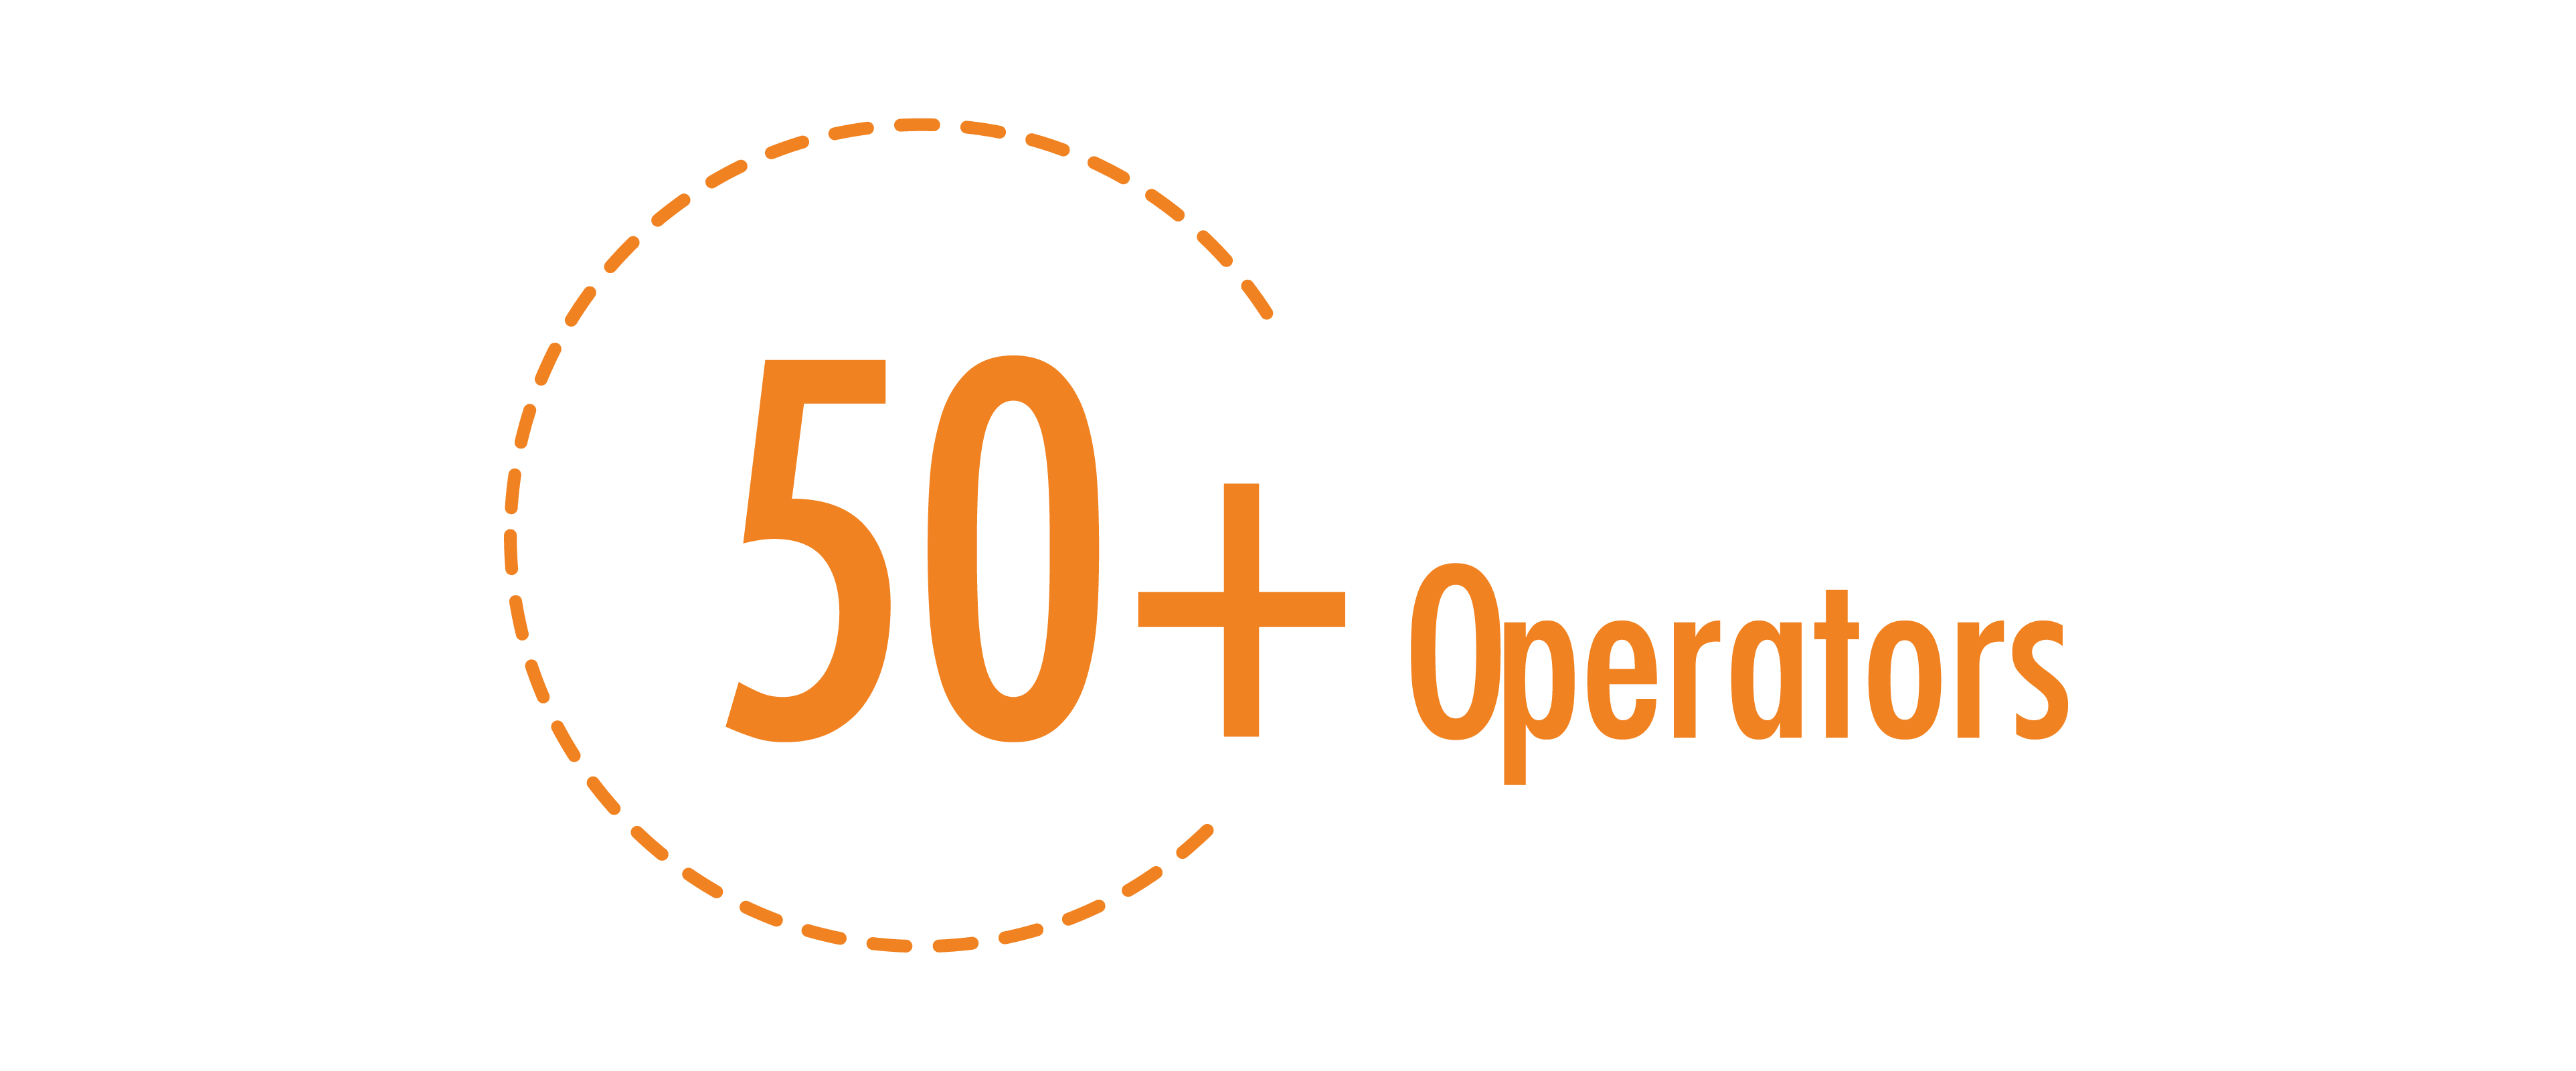 number of operators 50